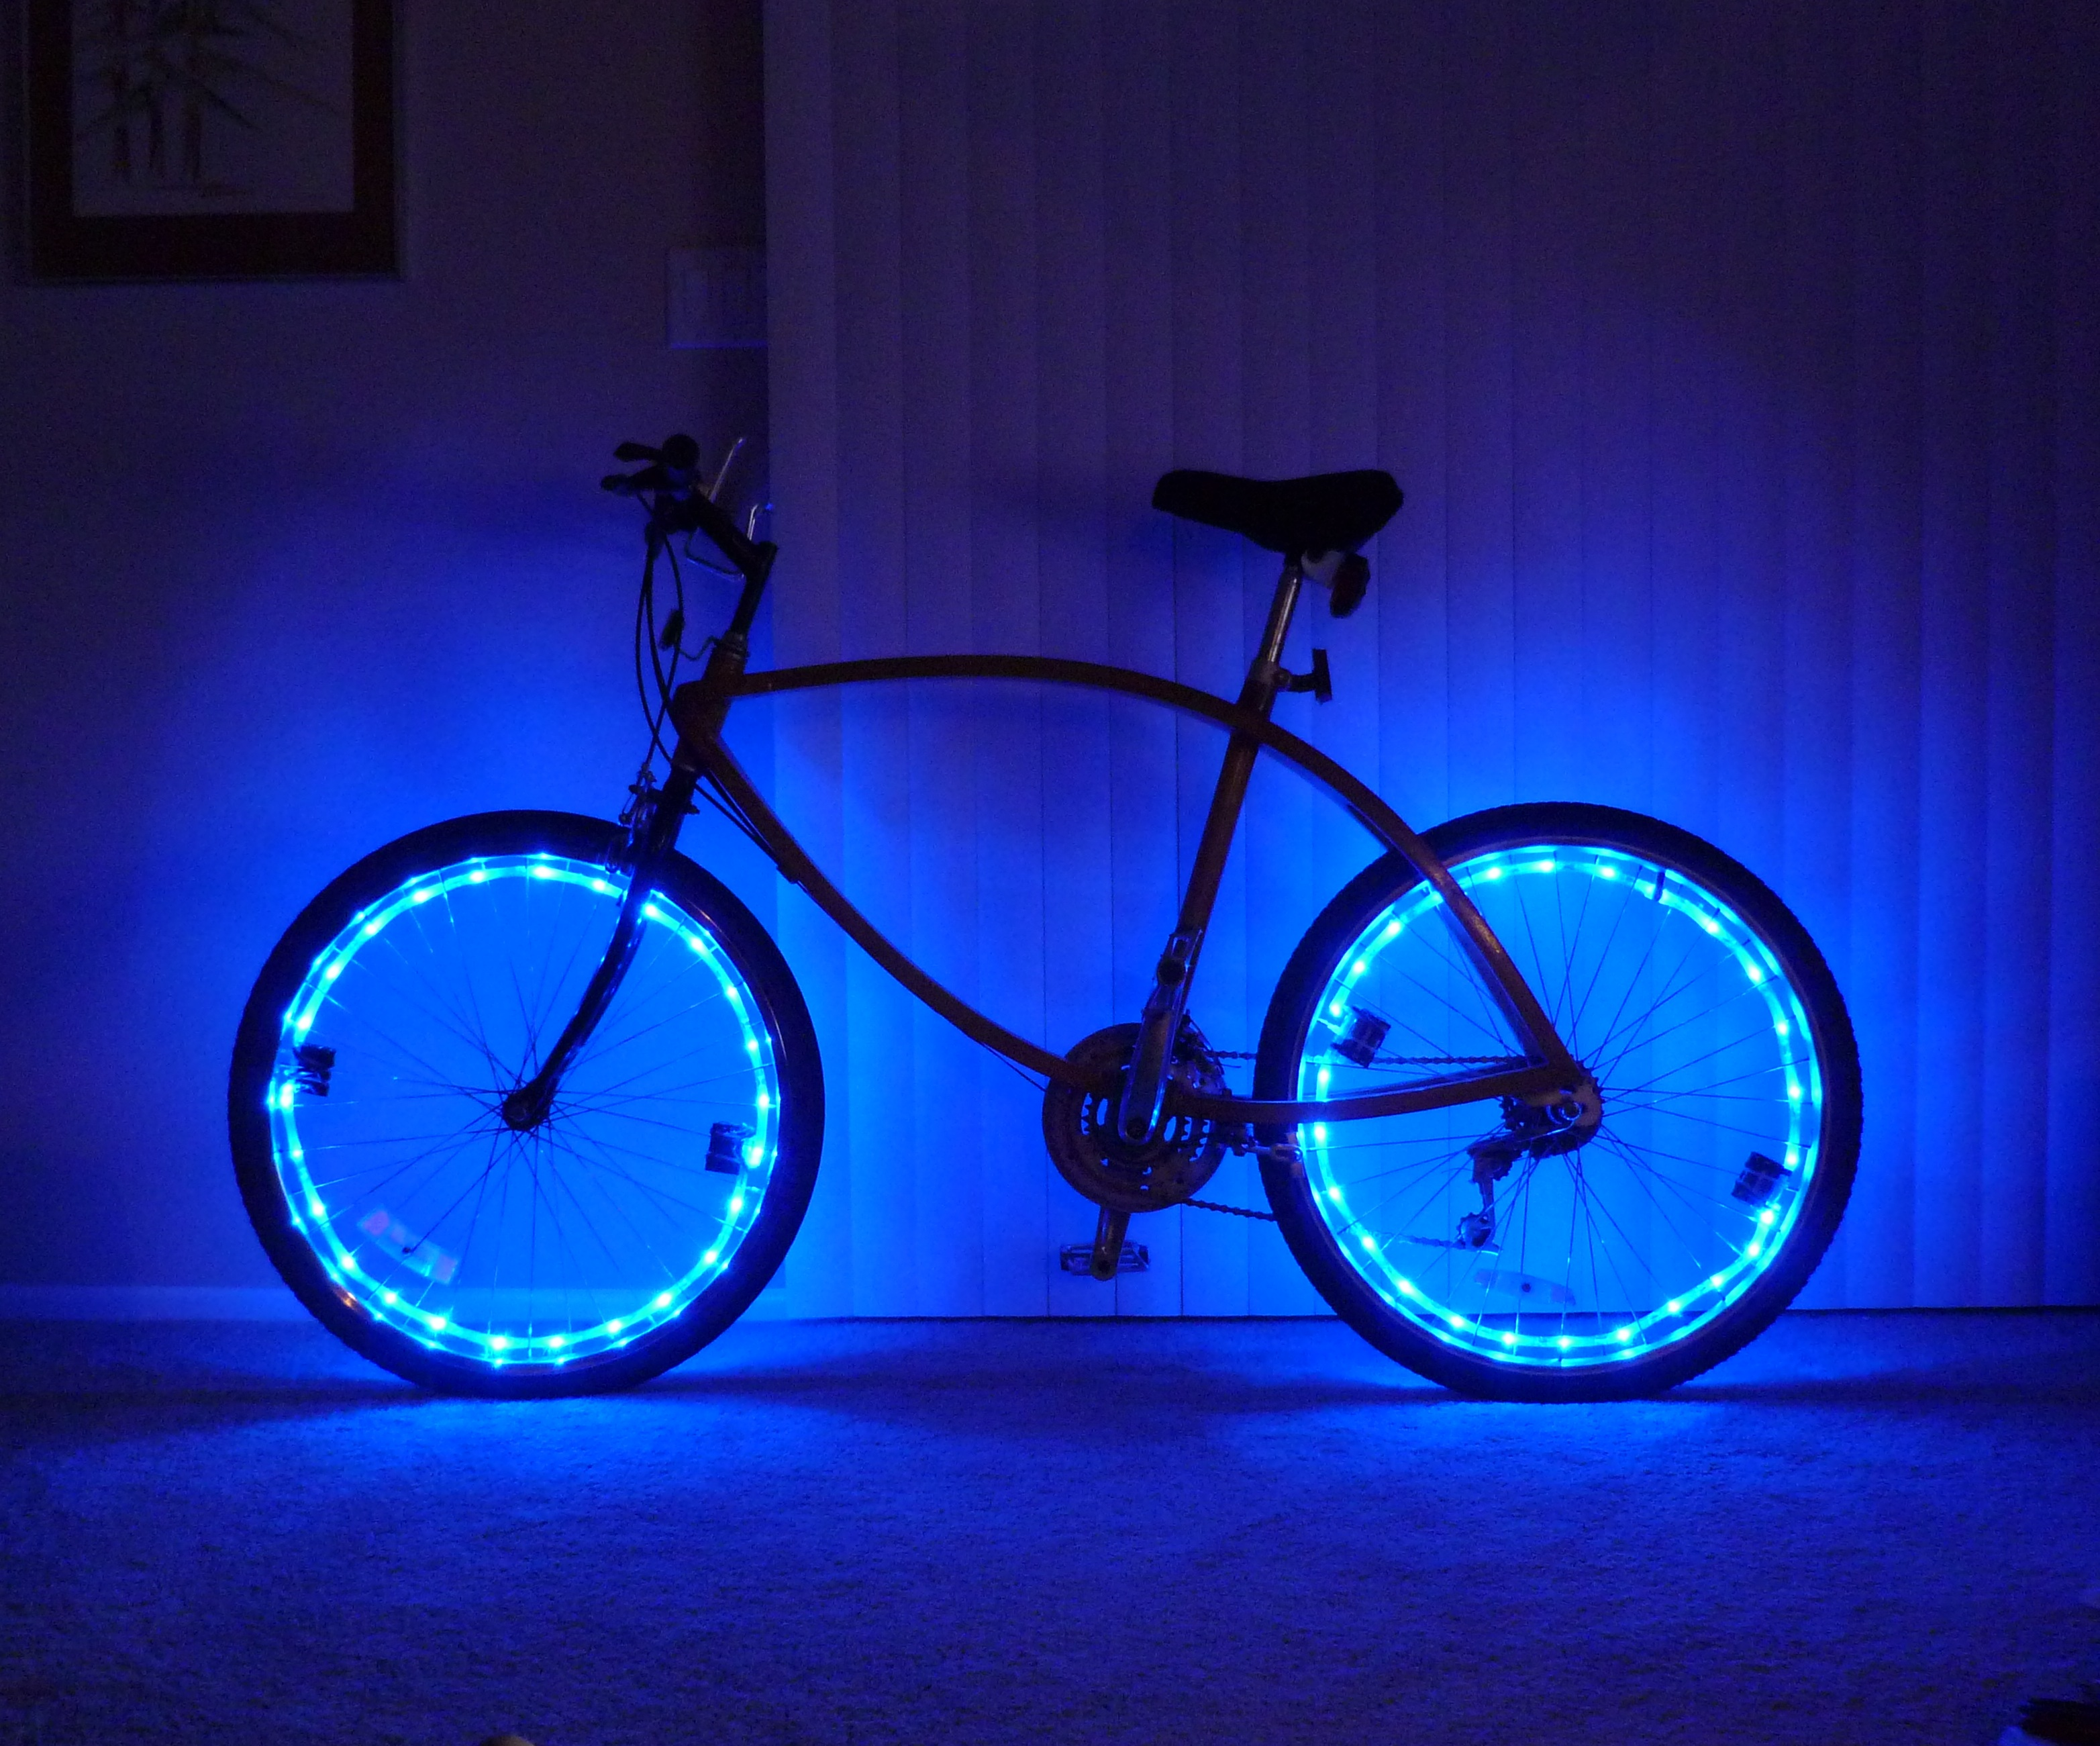 Bicycle Rim Lights